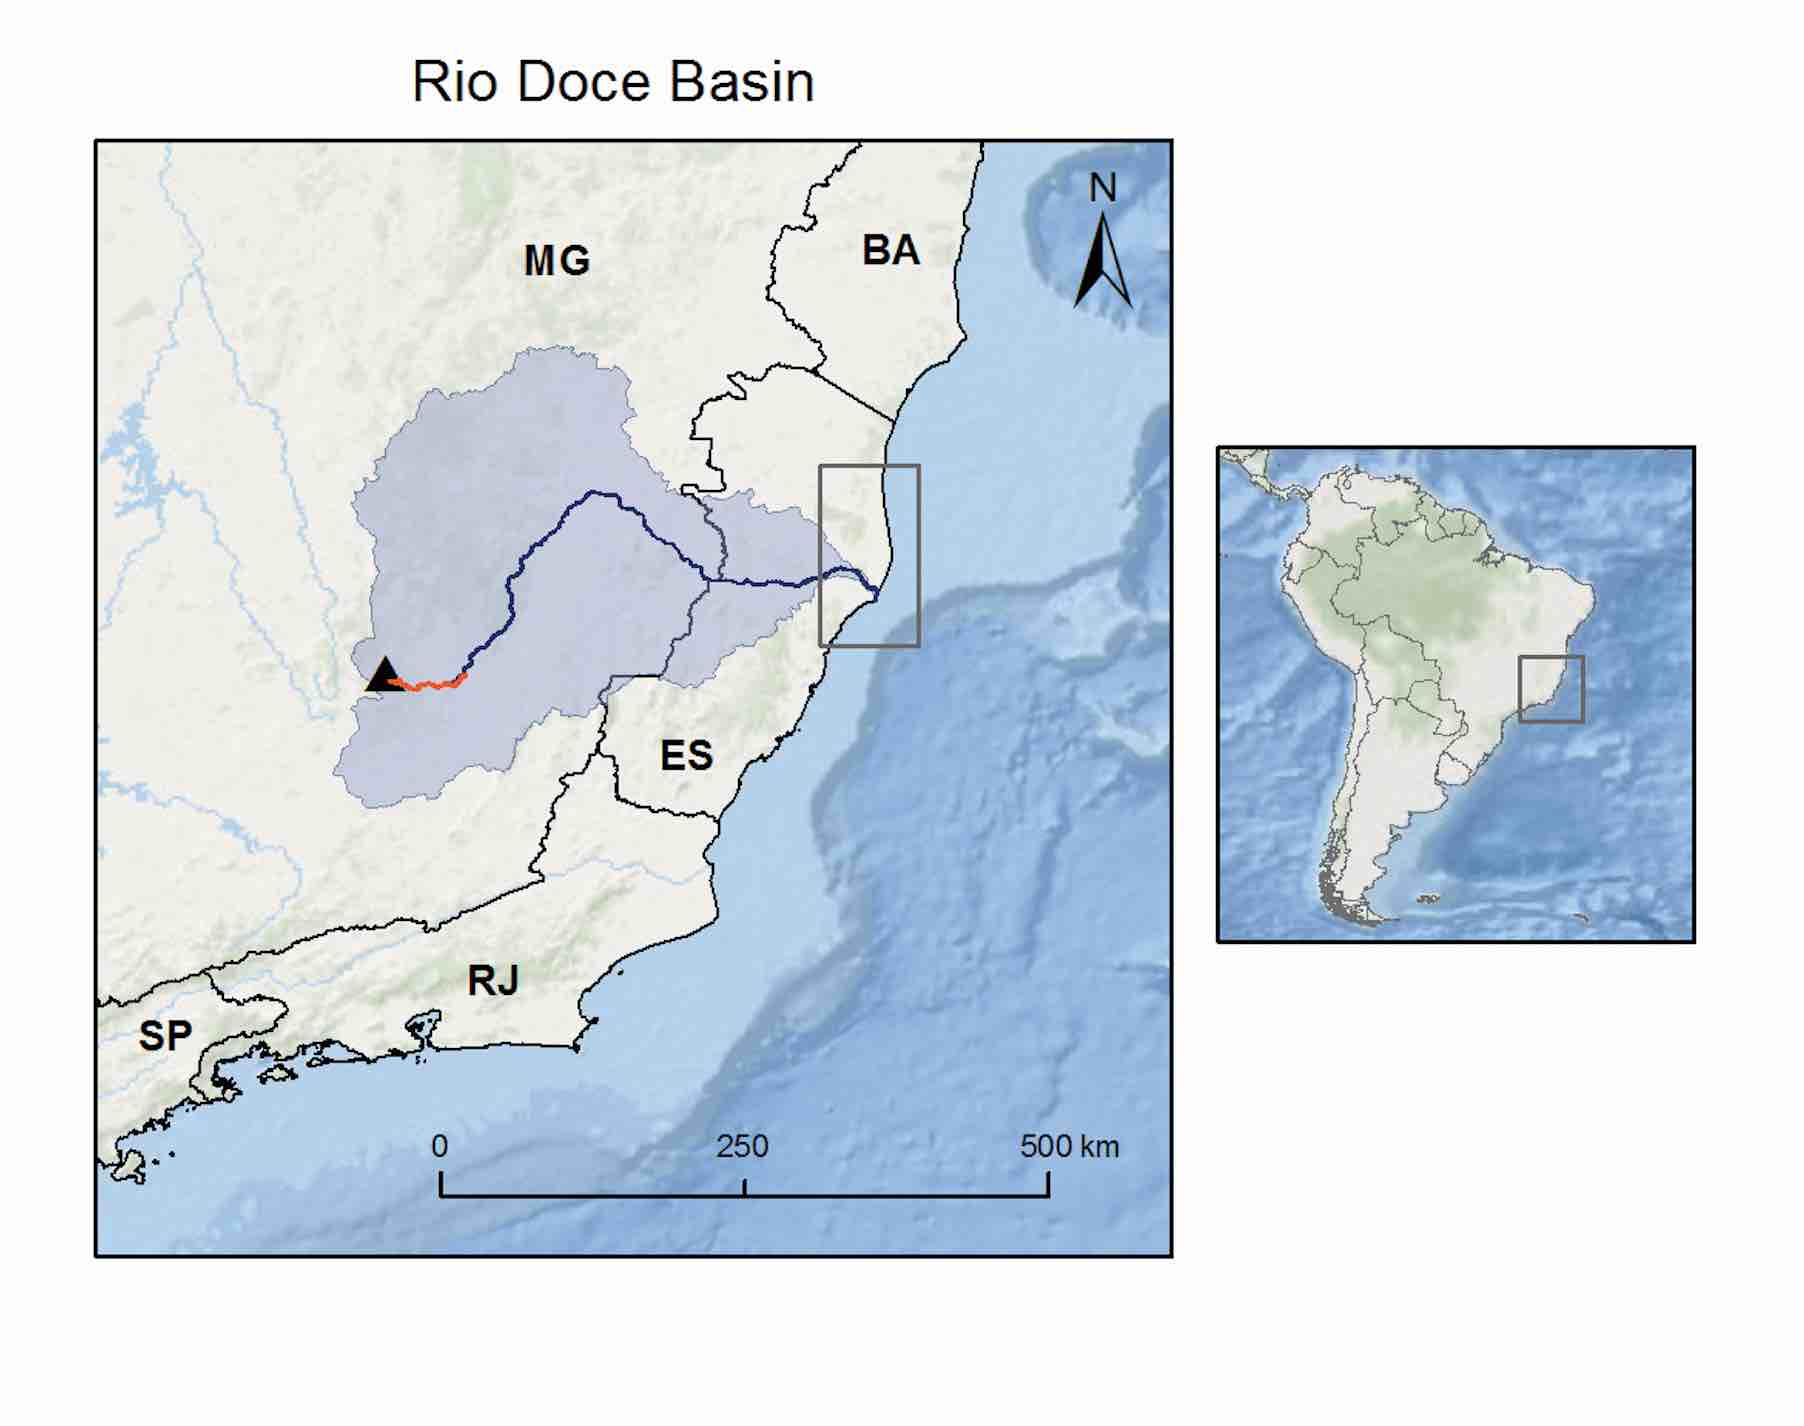 Maps showing the basin of the Rio Doce, the location of the Fundão Dam, the pathway of waste from the dam to the sea, and the density of sea turtle nesting near the mouth of the Rio Doce. © CENTRO TAMAR-ICMBIO